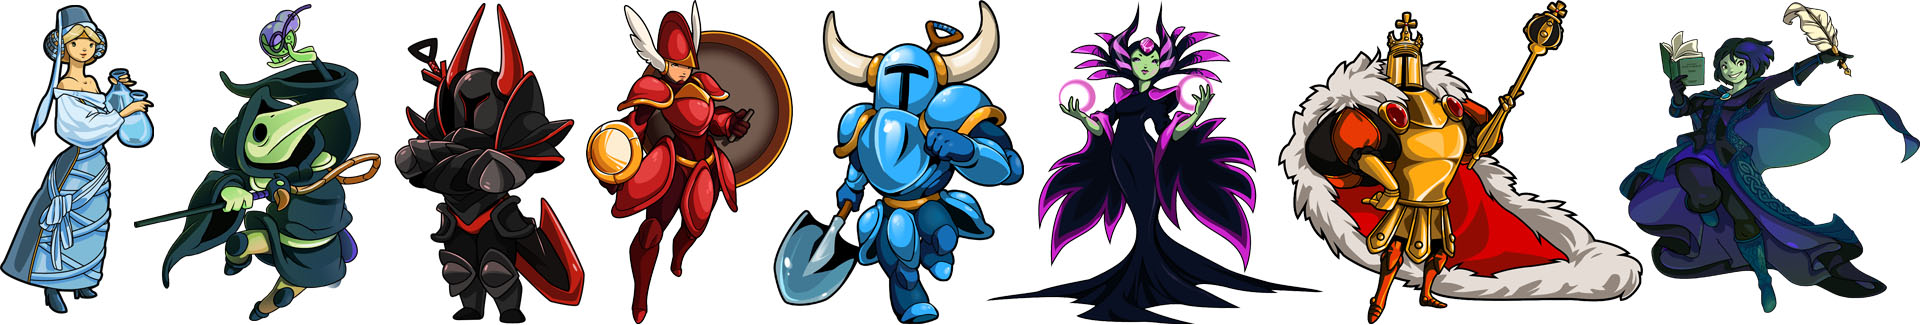 shovel-knight-characters